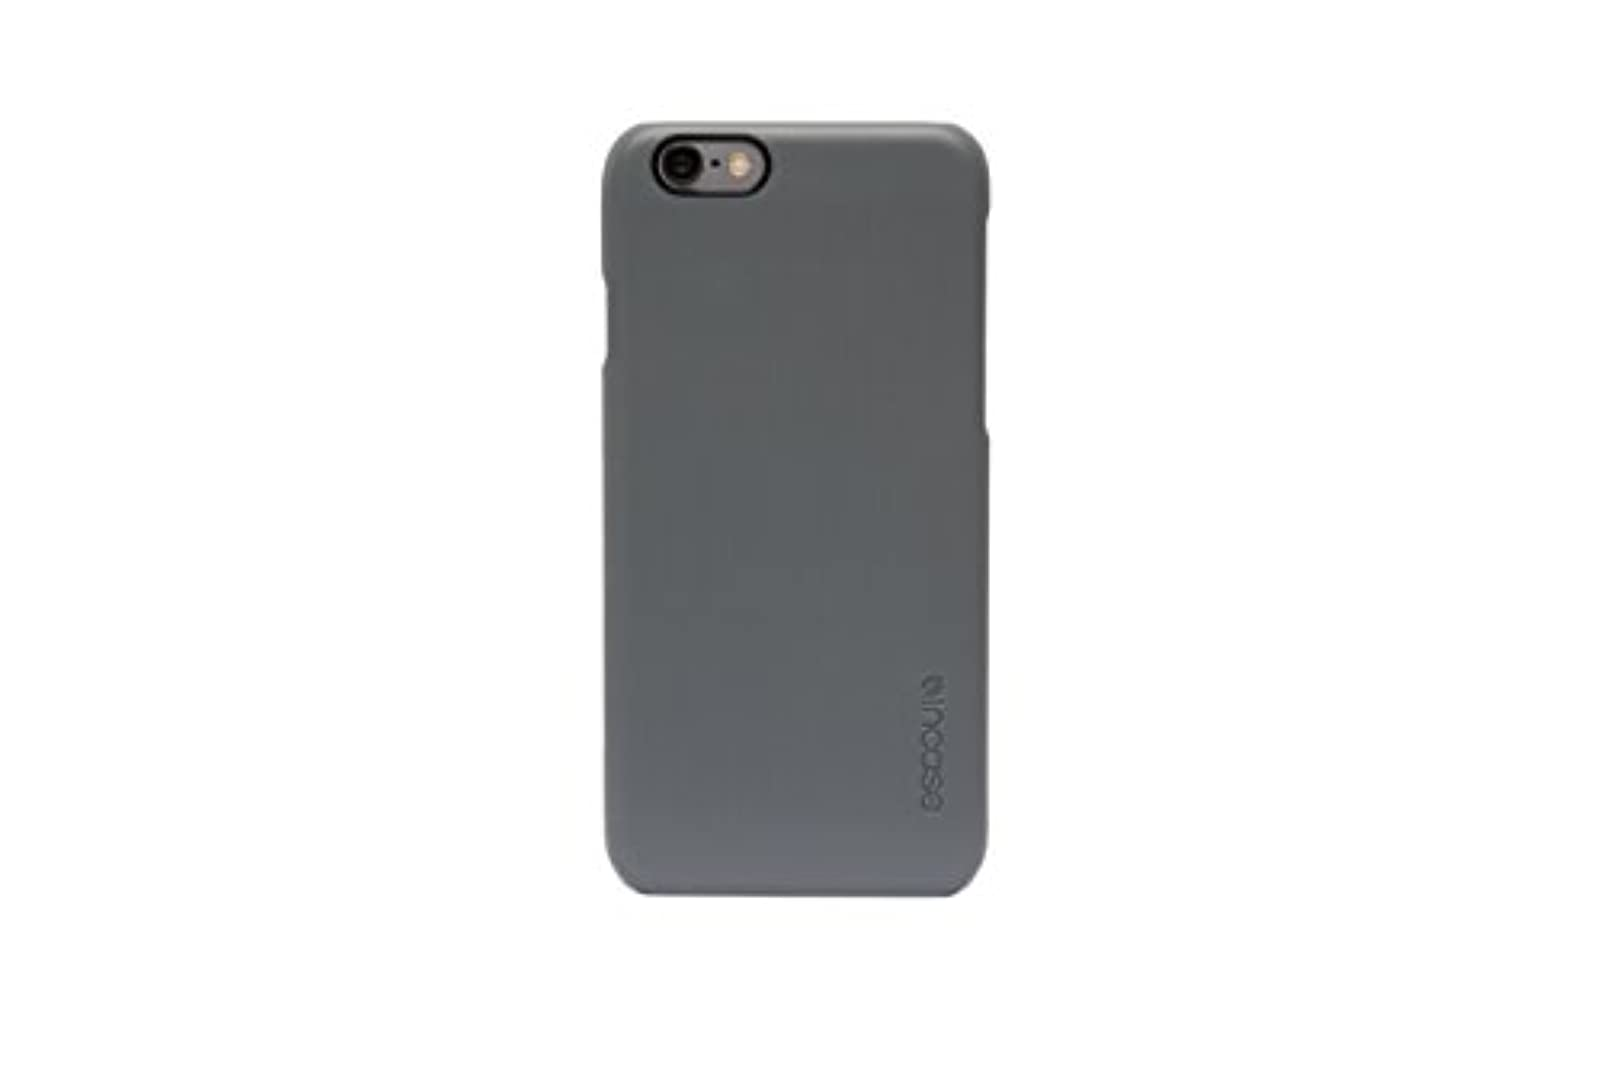 Incase Designs Quick Snap Case For iPhone 6 Hairline Gray Cover Grey 6S